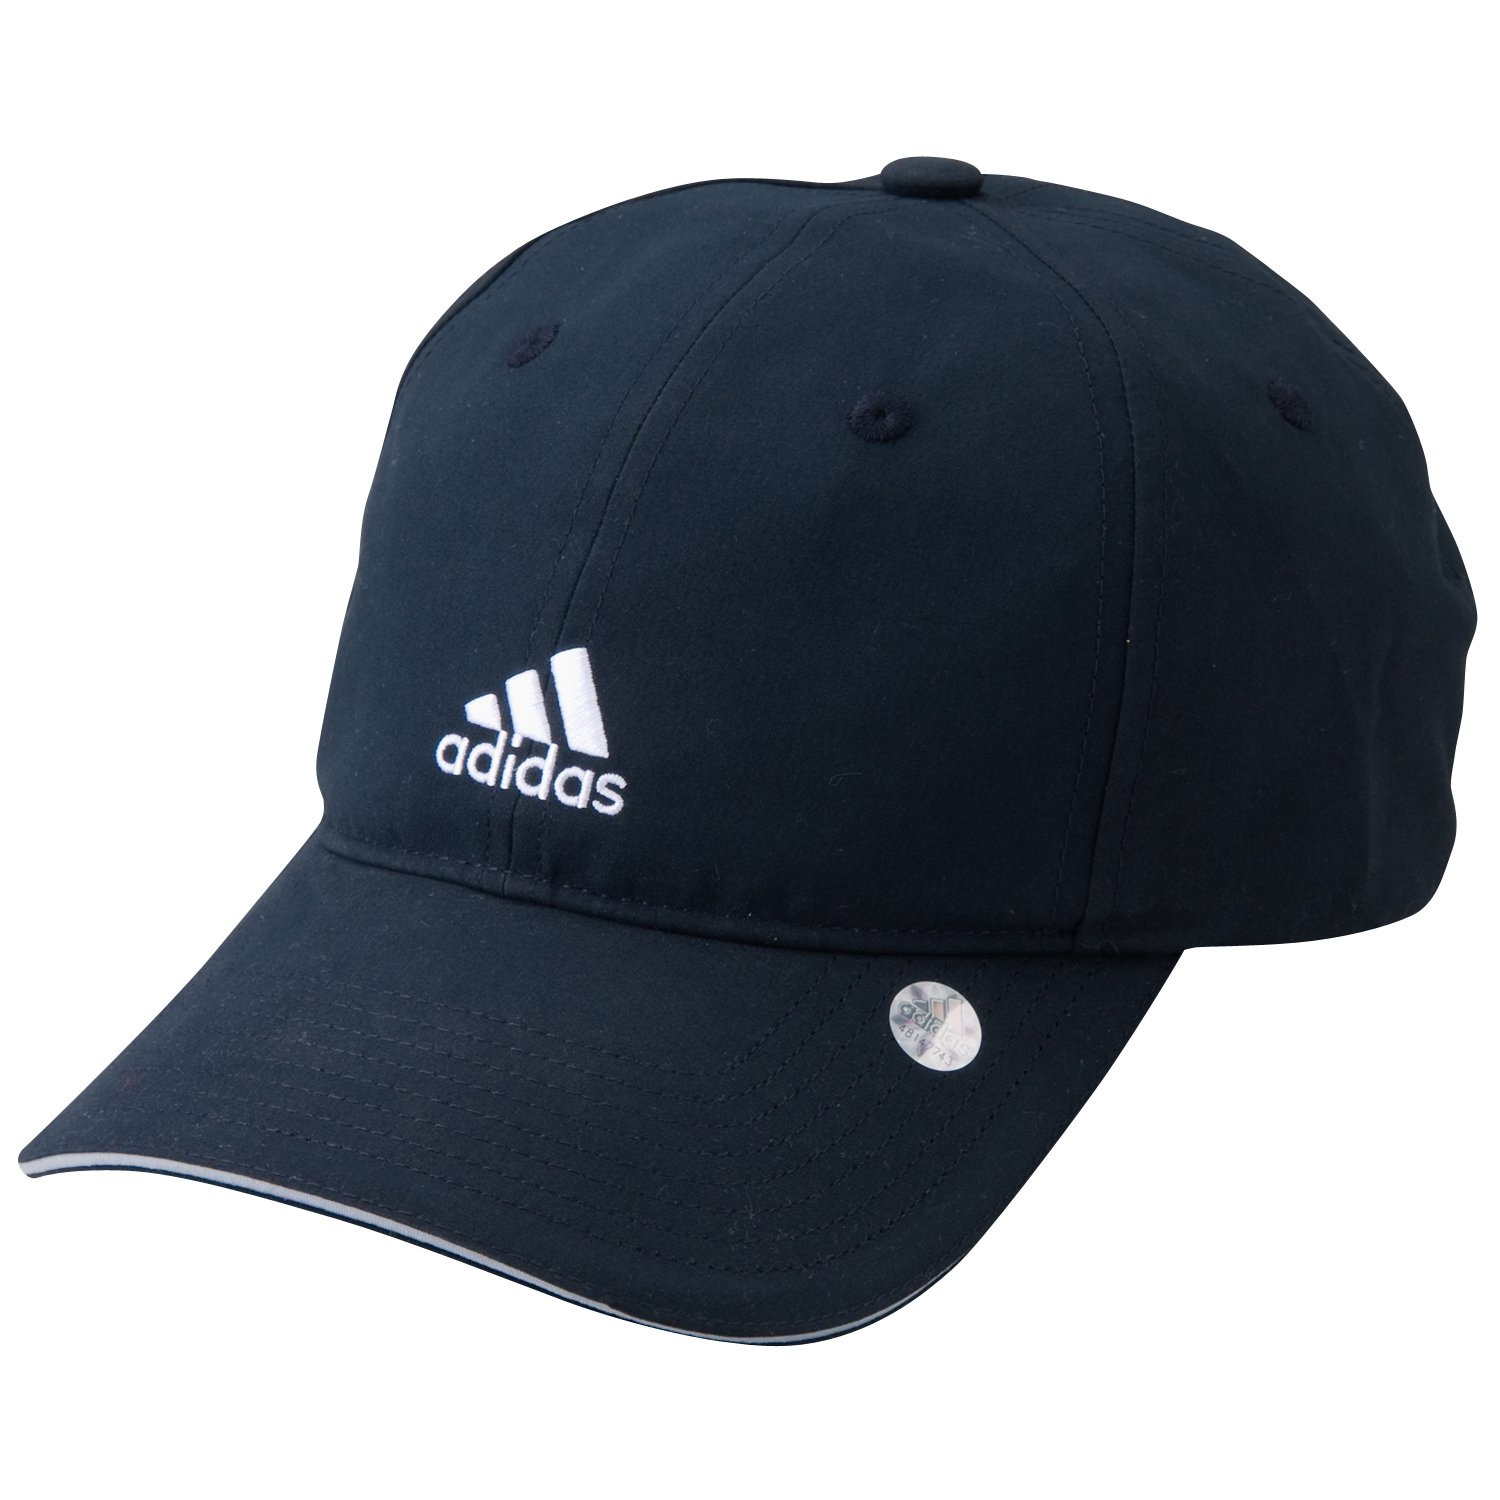 adidas Essentials Corporate Cap ADULTS Navy: Amazon.co.uk